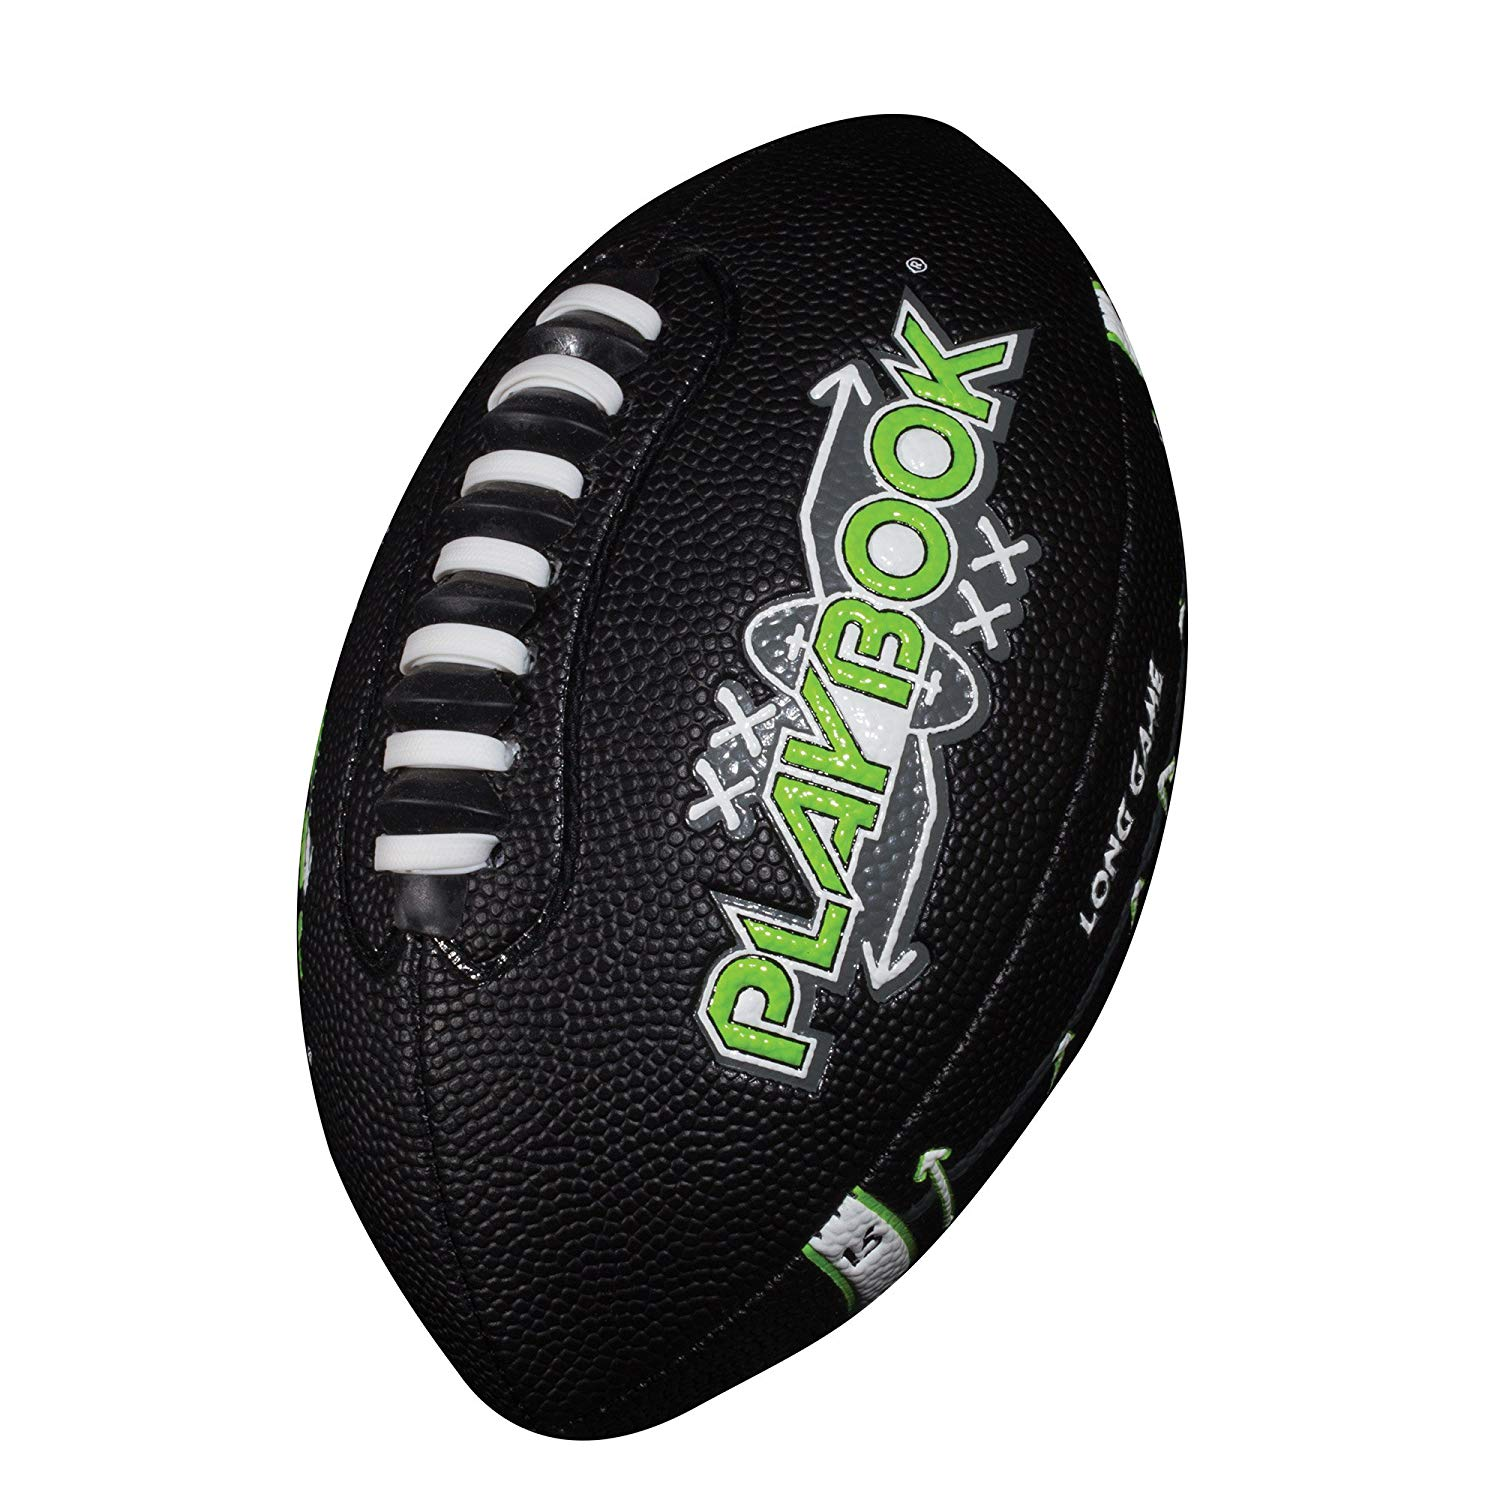 Playbook Football, Unique footballs designed to help provide players with route options By Franklin Sports